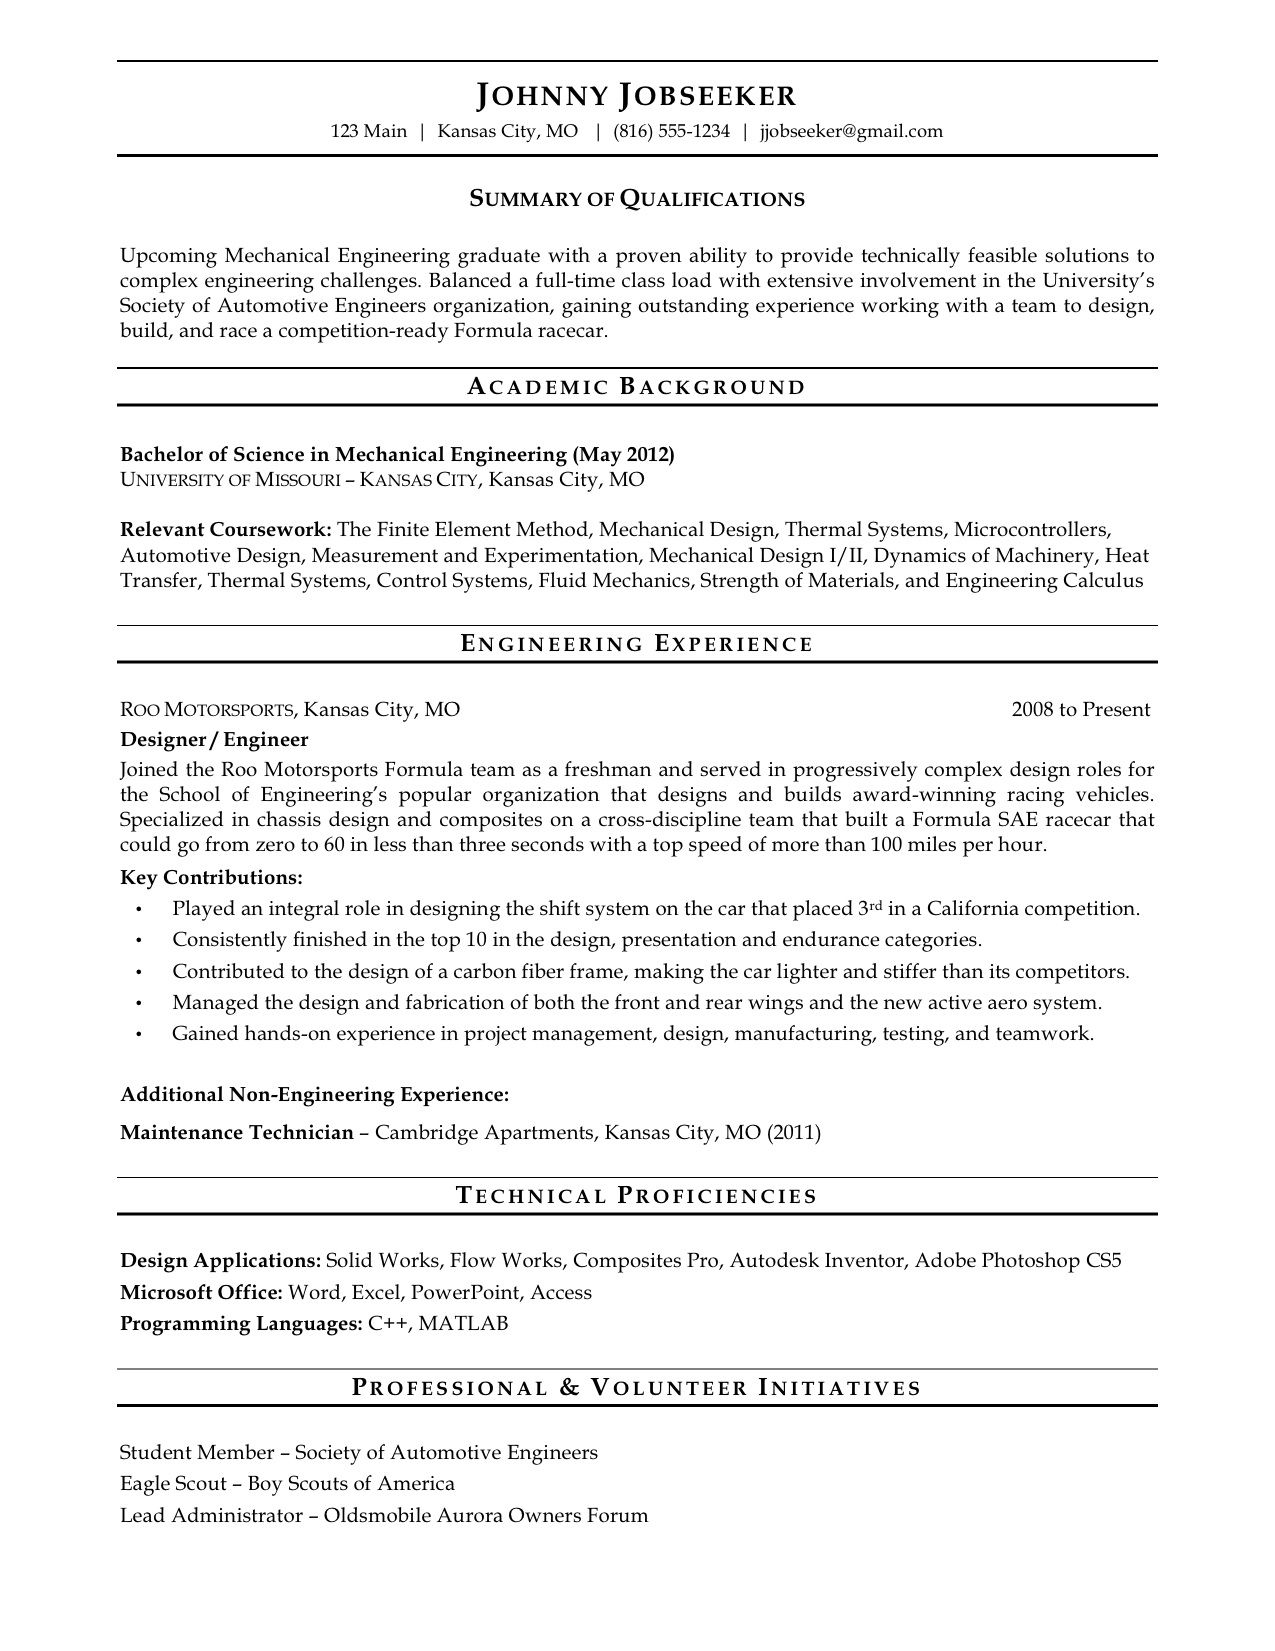 Resume Template Pinterest New Graduate Resume Sample Resume Samples Pinterest